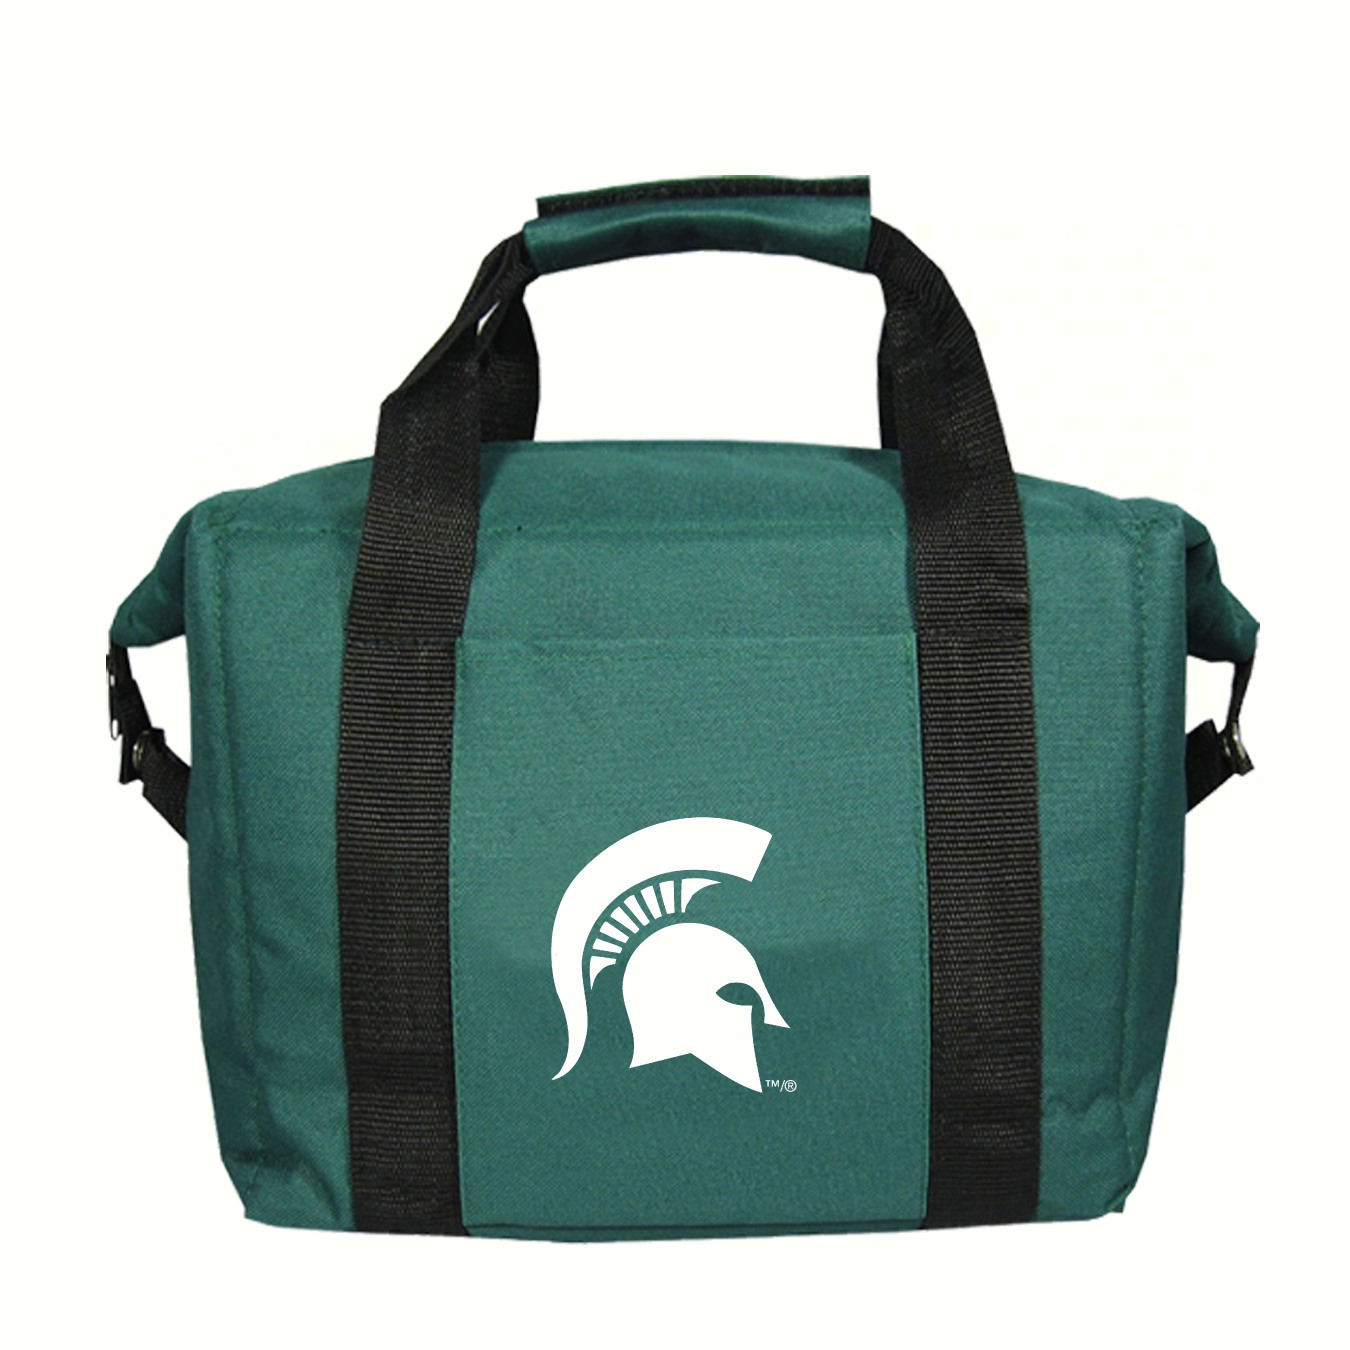 Kooler Bag - Michigan State Spartans (Holds a 12 pack)